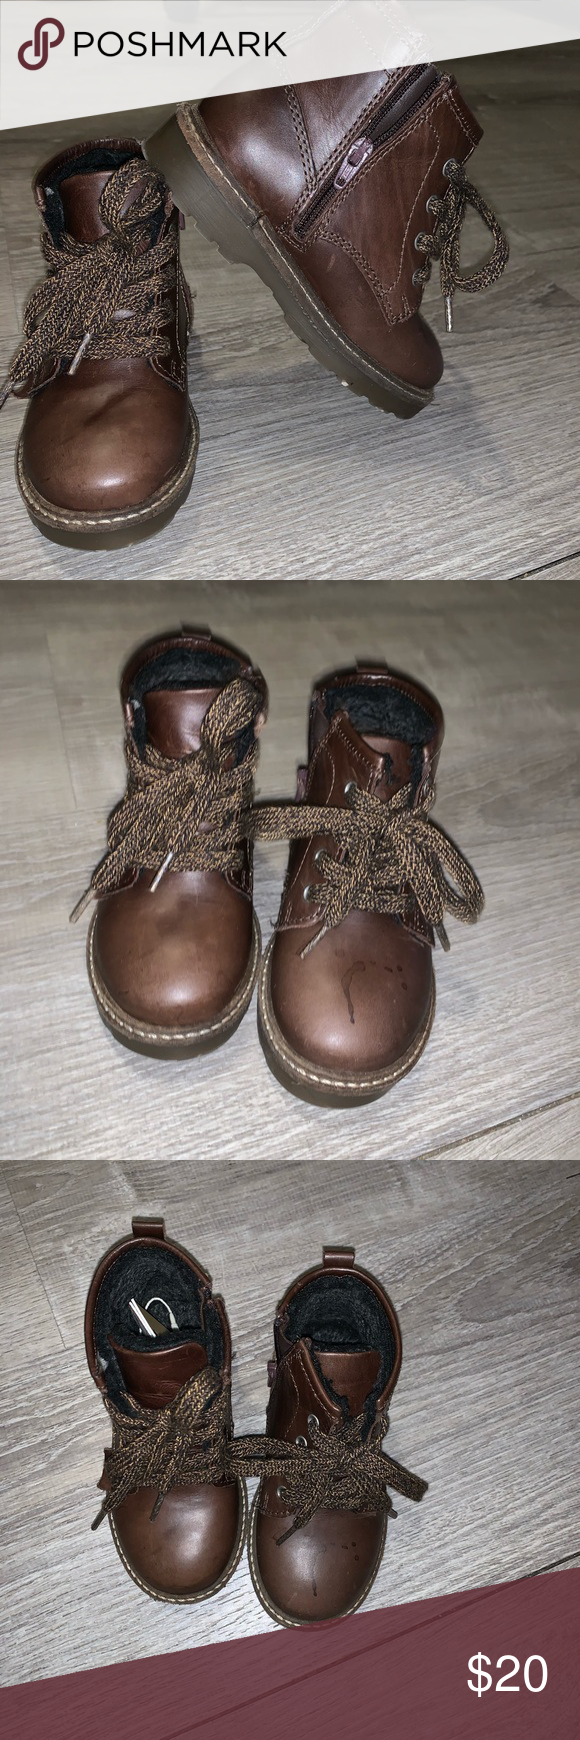 ‼️SALE‼️ Zara baby leather boots USED/WORN These cute and stylish  Zara …